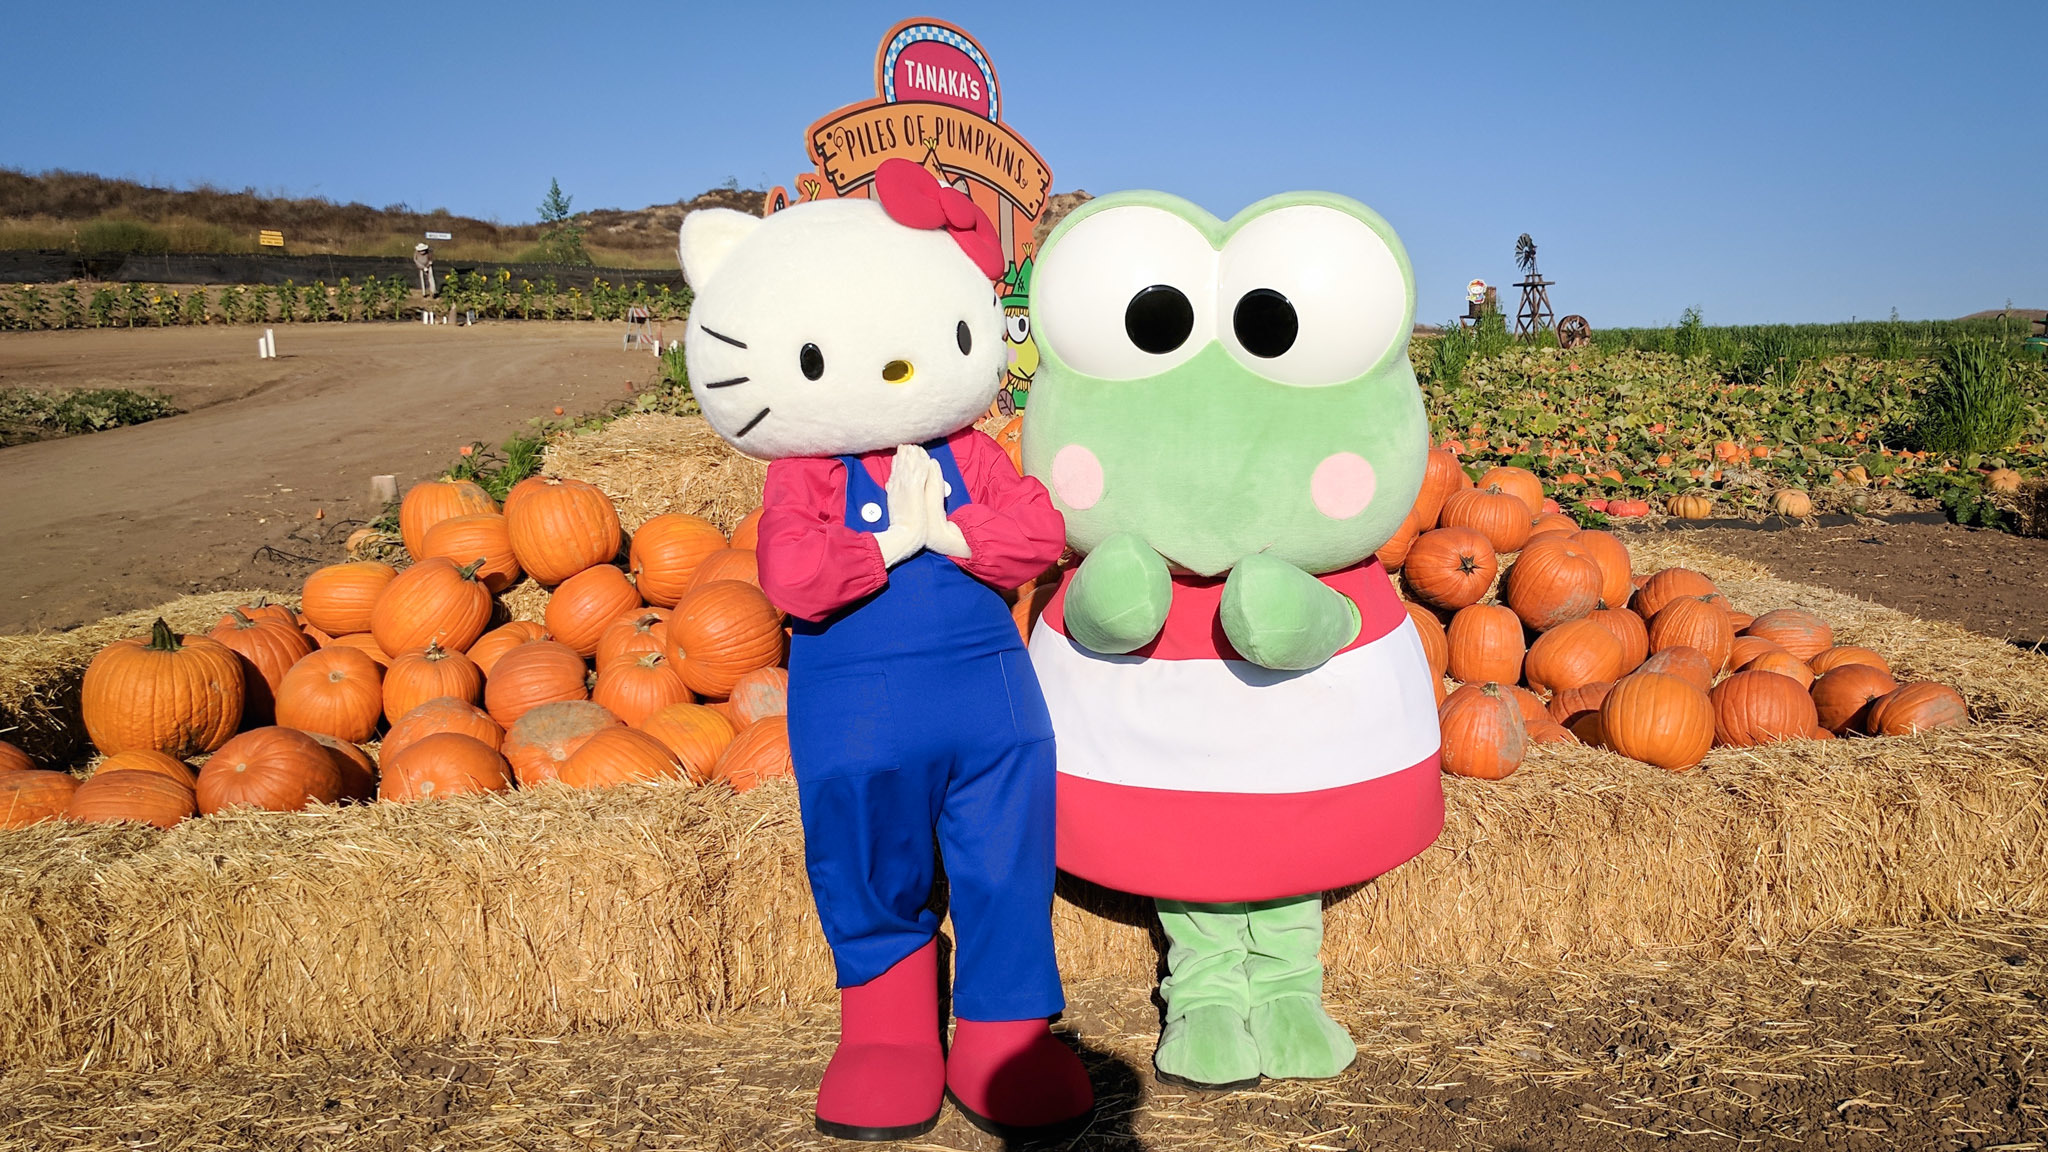 Take a tour of the adorable Hello Kitty pumpkin patch in Irvine